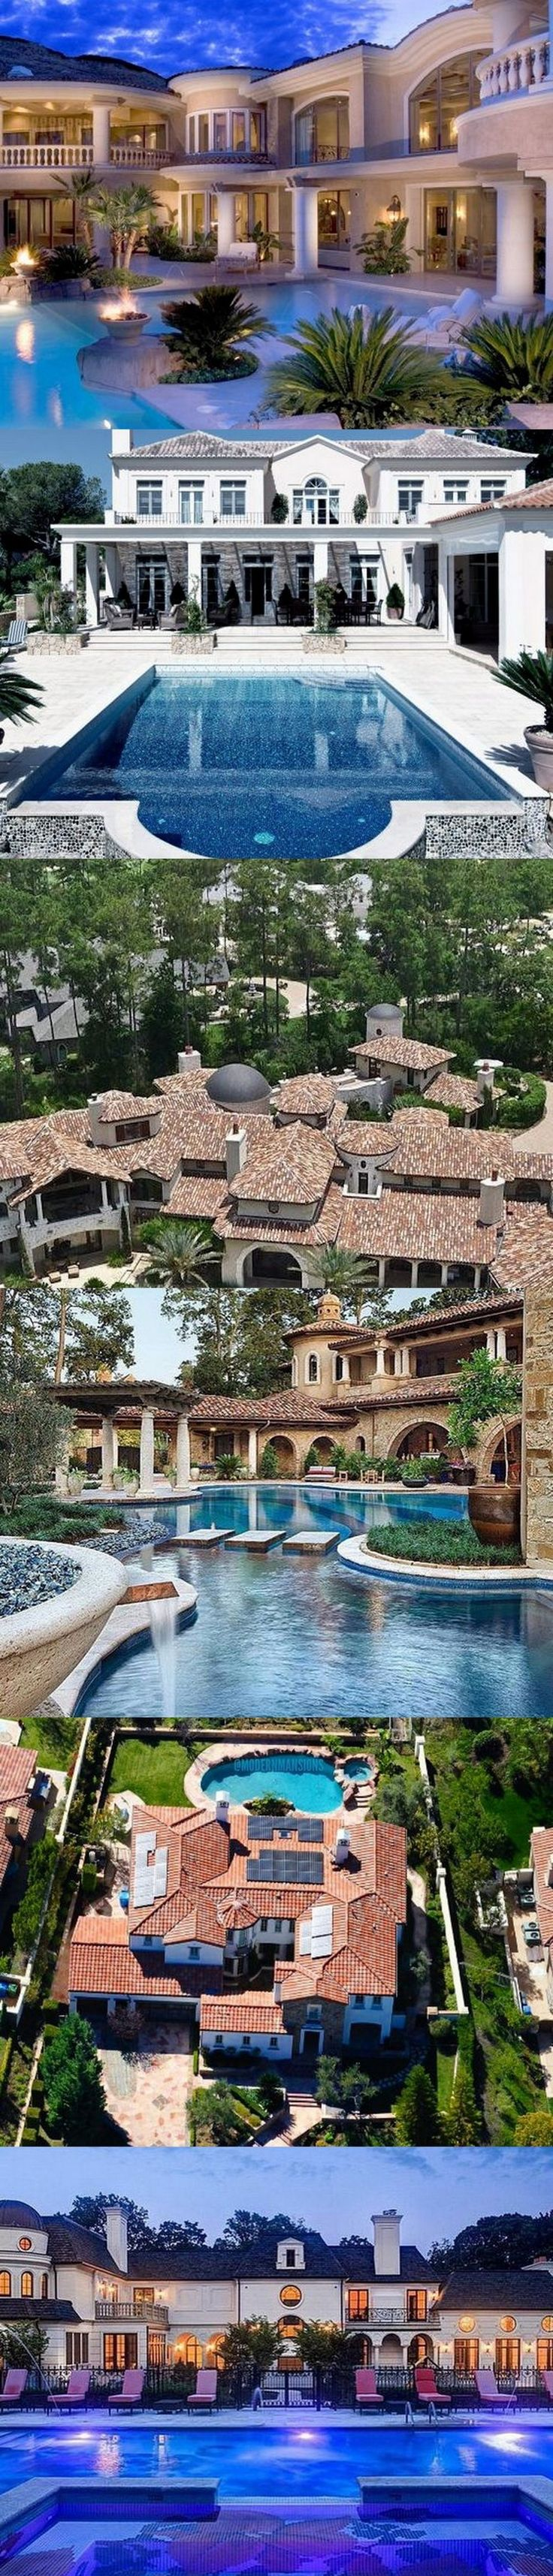 Best 25+ Dream mansion ideas on Pinterest | Mansion, Mansions ...